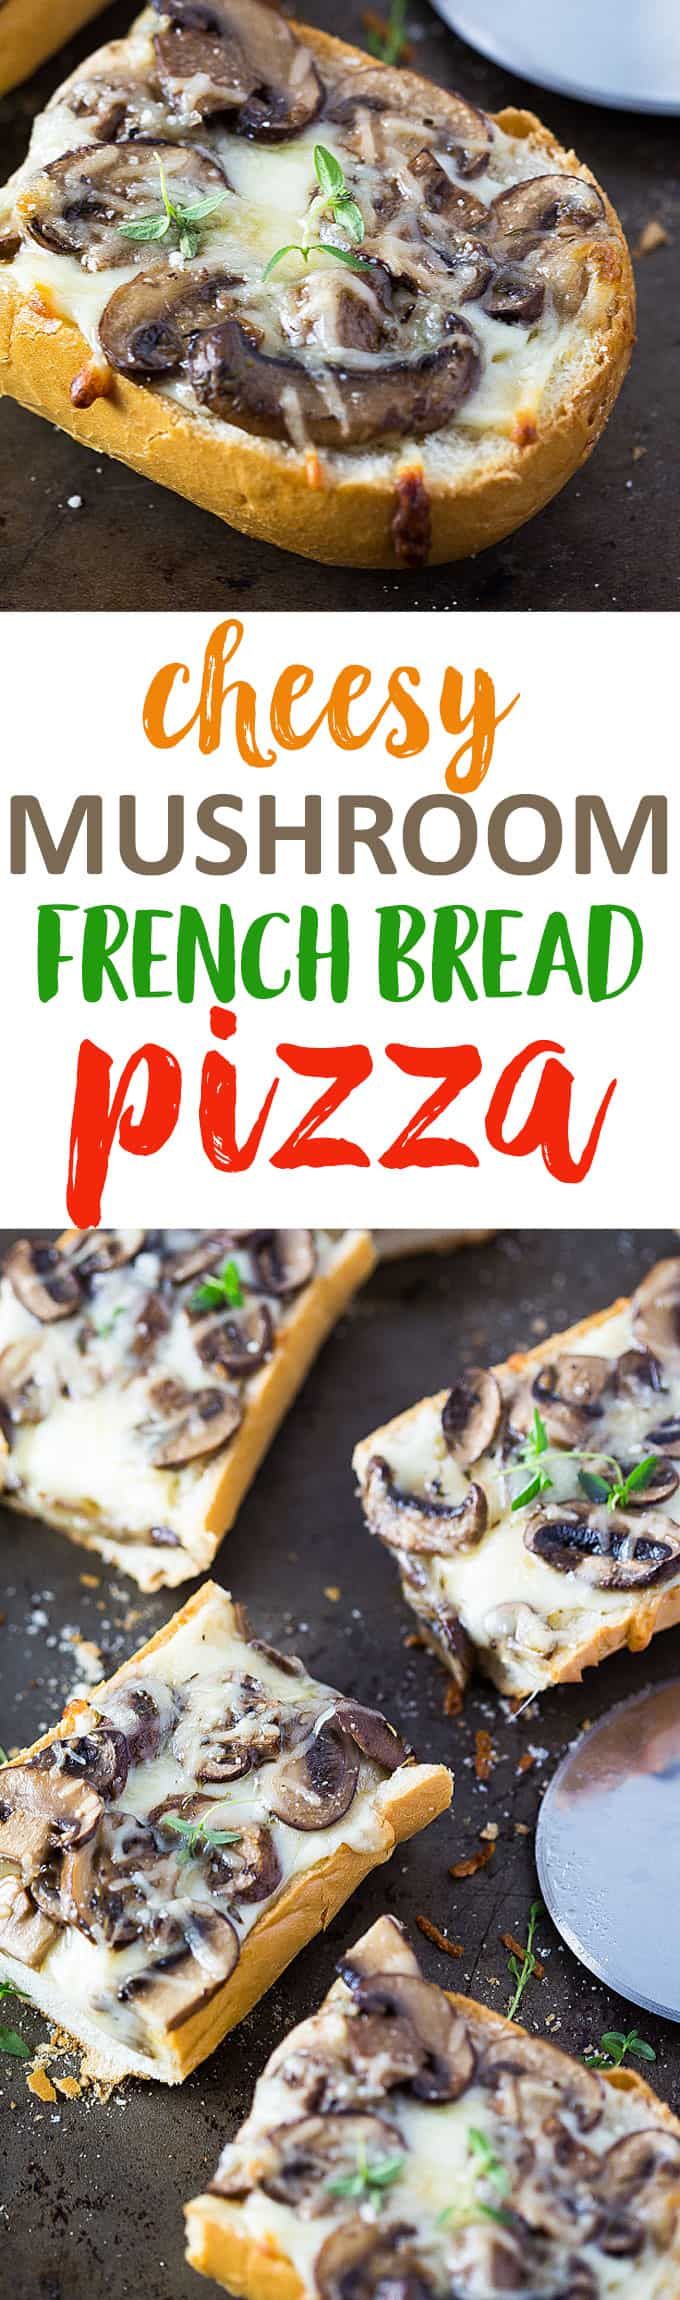 Two images of pizza - Text in center says mushroom French bread pizza.